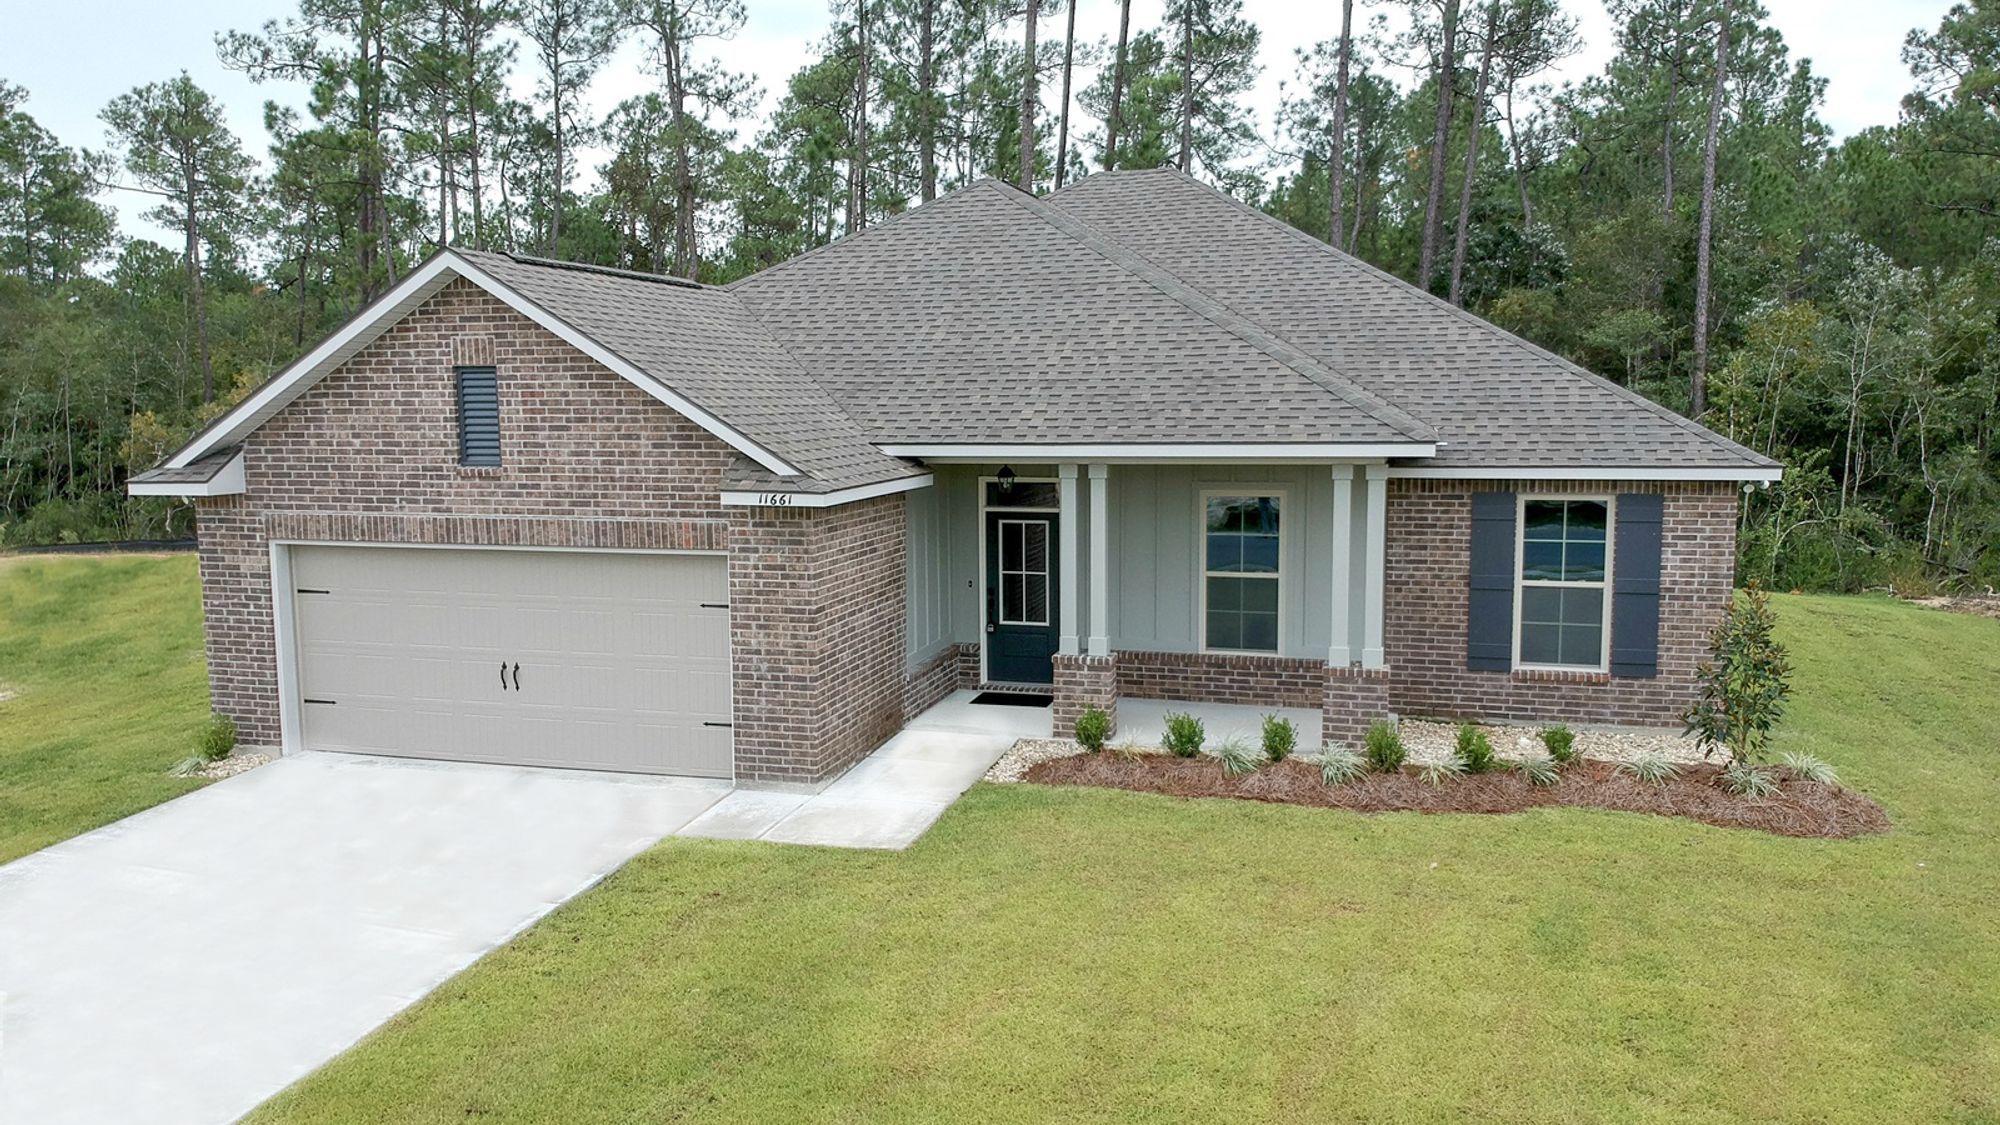 Front View Rodessa II A Talla Pointe Community Plan DSLD Homes Ocean Springs